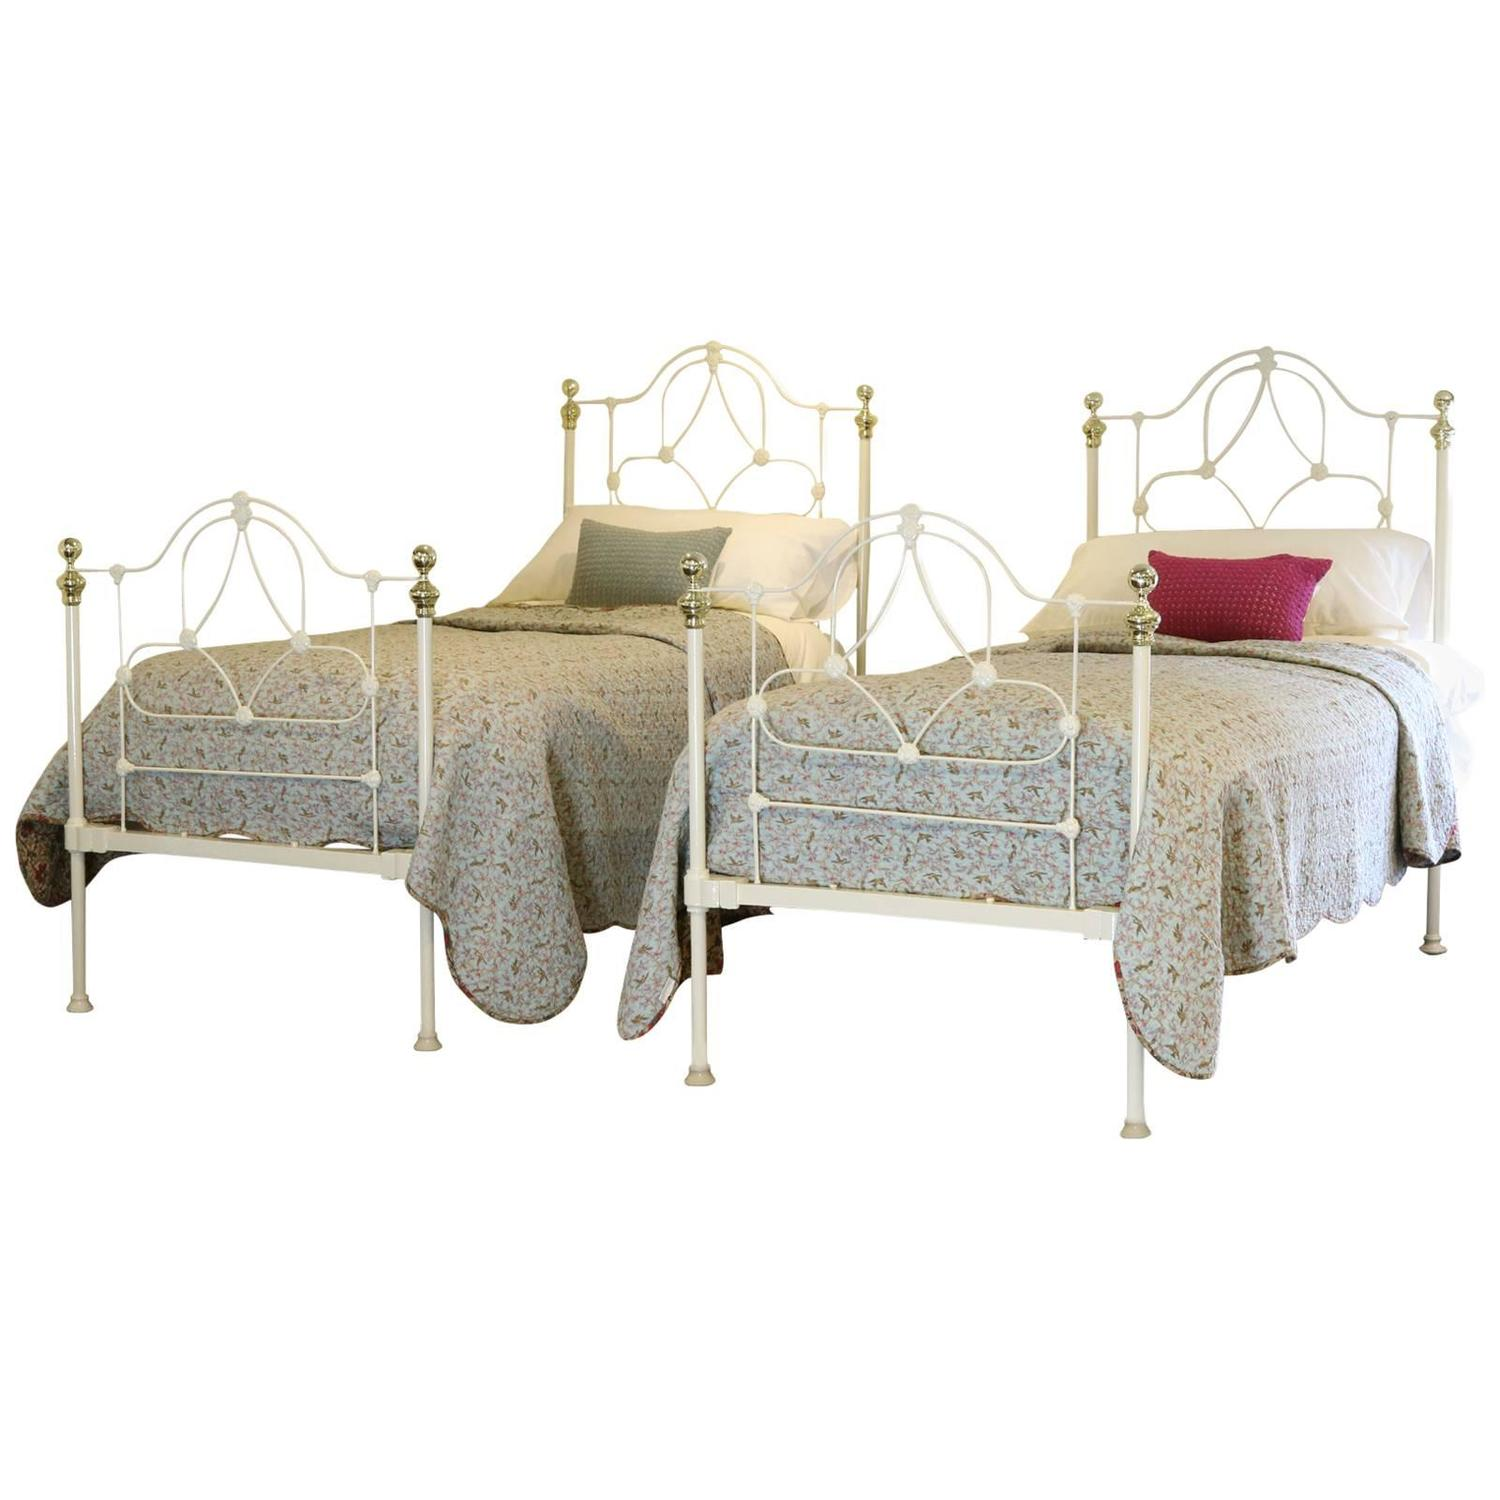 Victorian Cast Iron Beds : Pair of cream cast iron victorian beds at stdibs